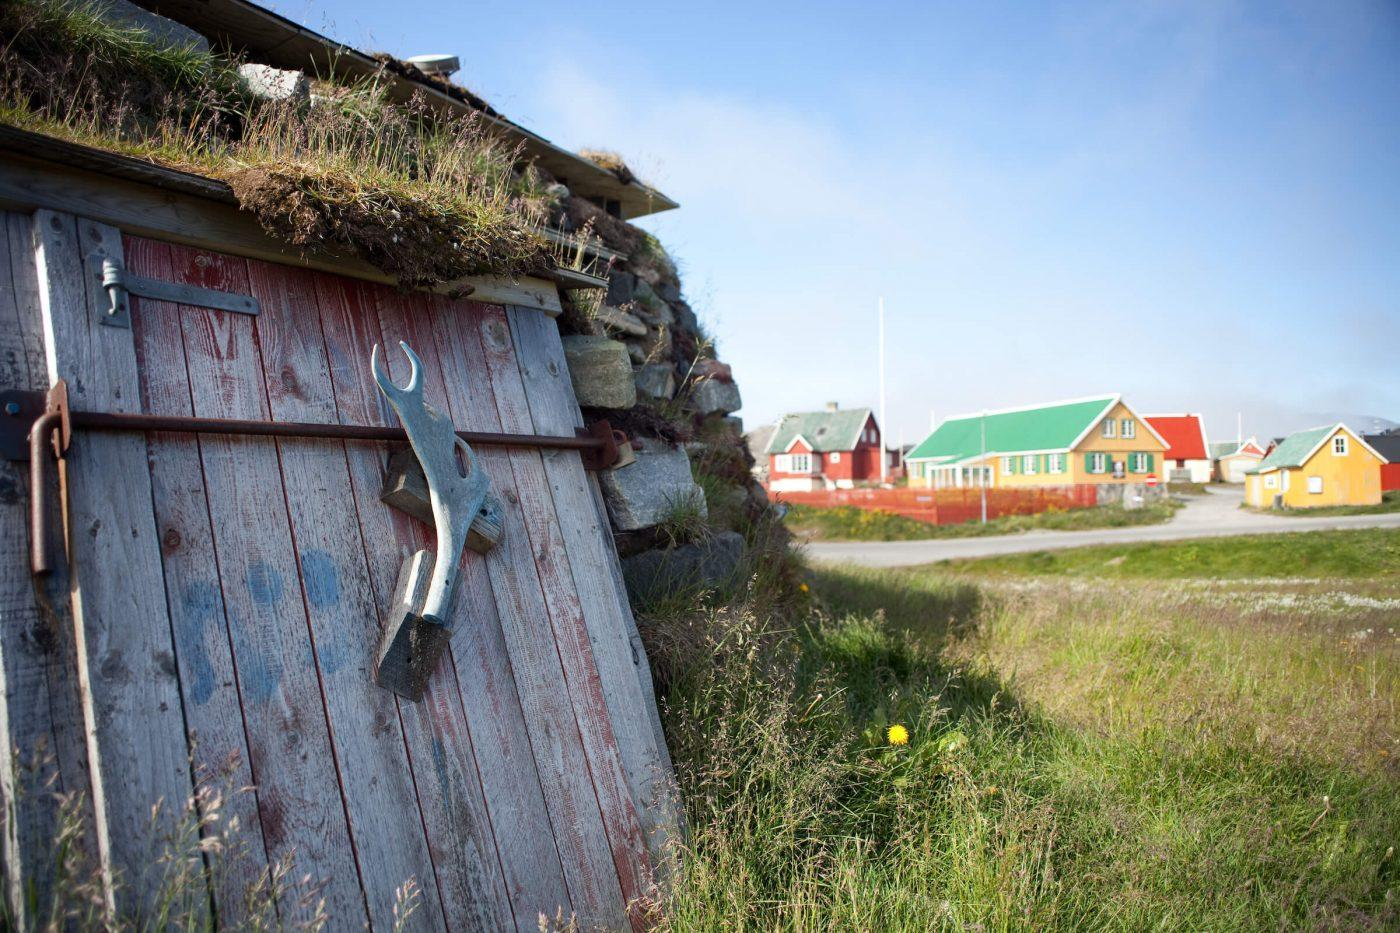 A Turf house from Paamiut in Greenland. By Angu Motzfeldt